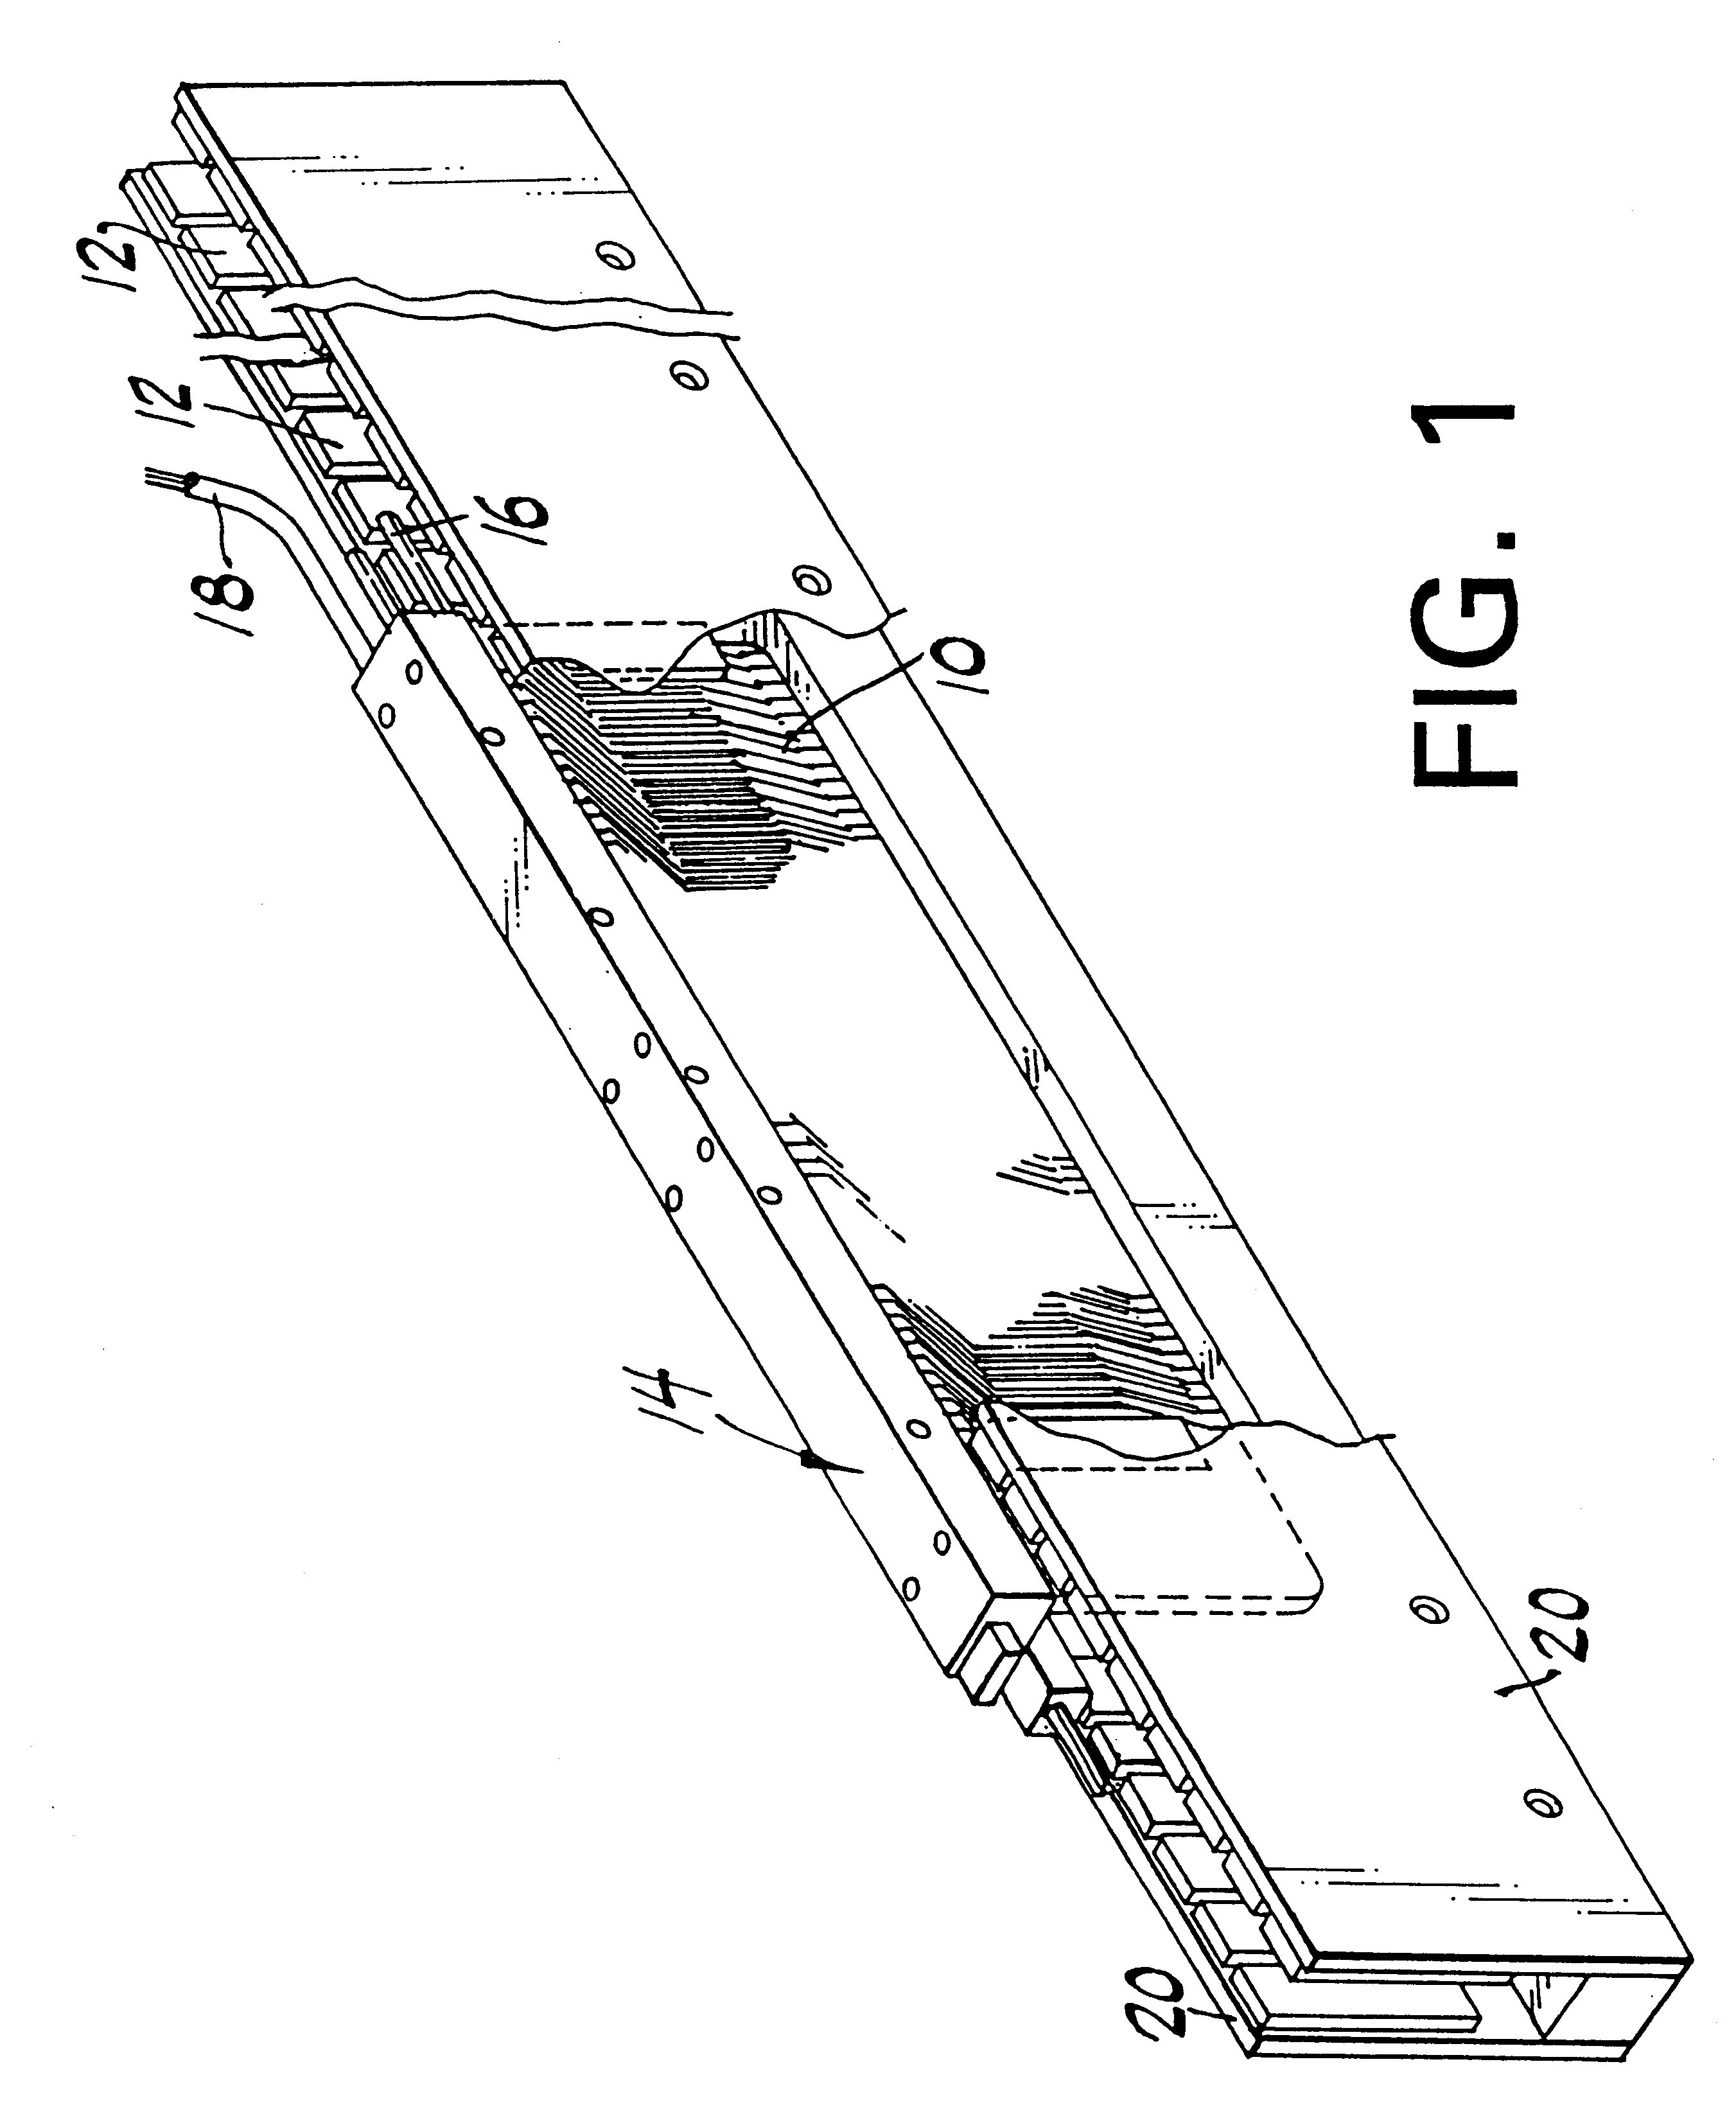 Patent Us6239516 High Performance Ironless Linear Motor With Supported Windings Google Patents